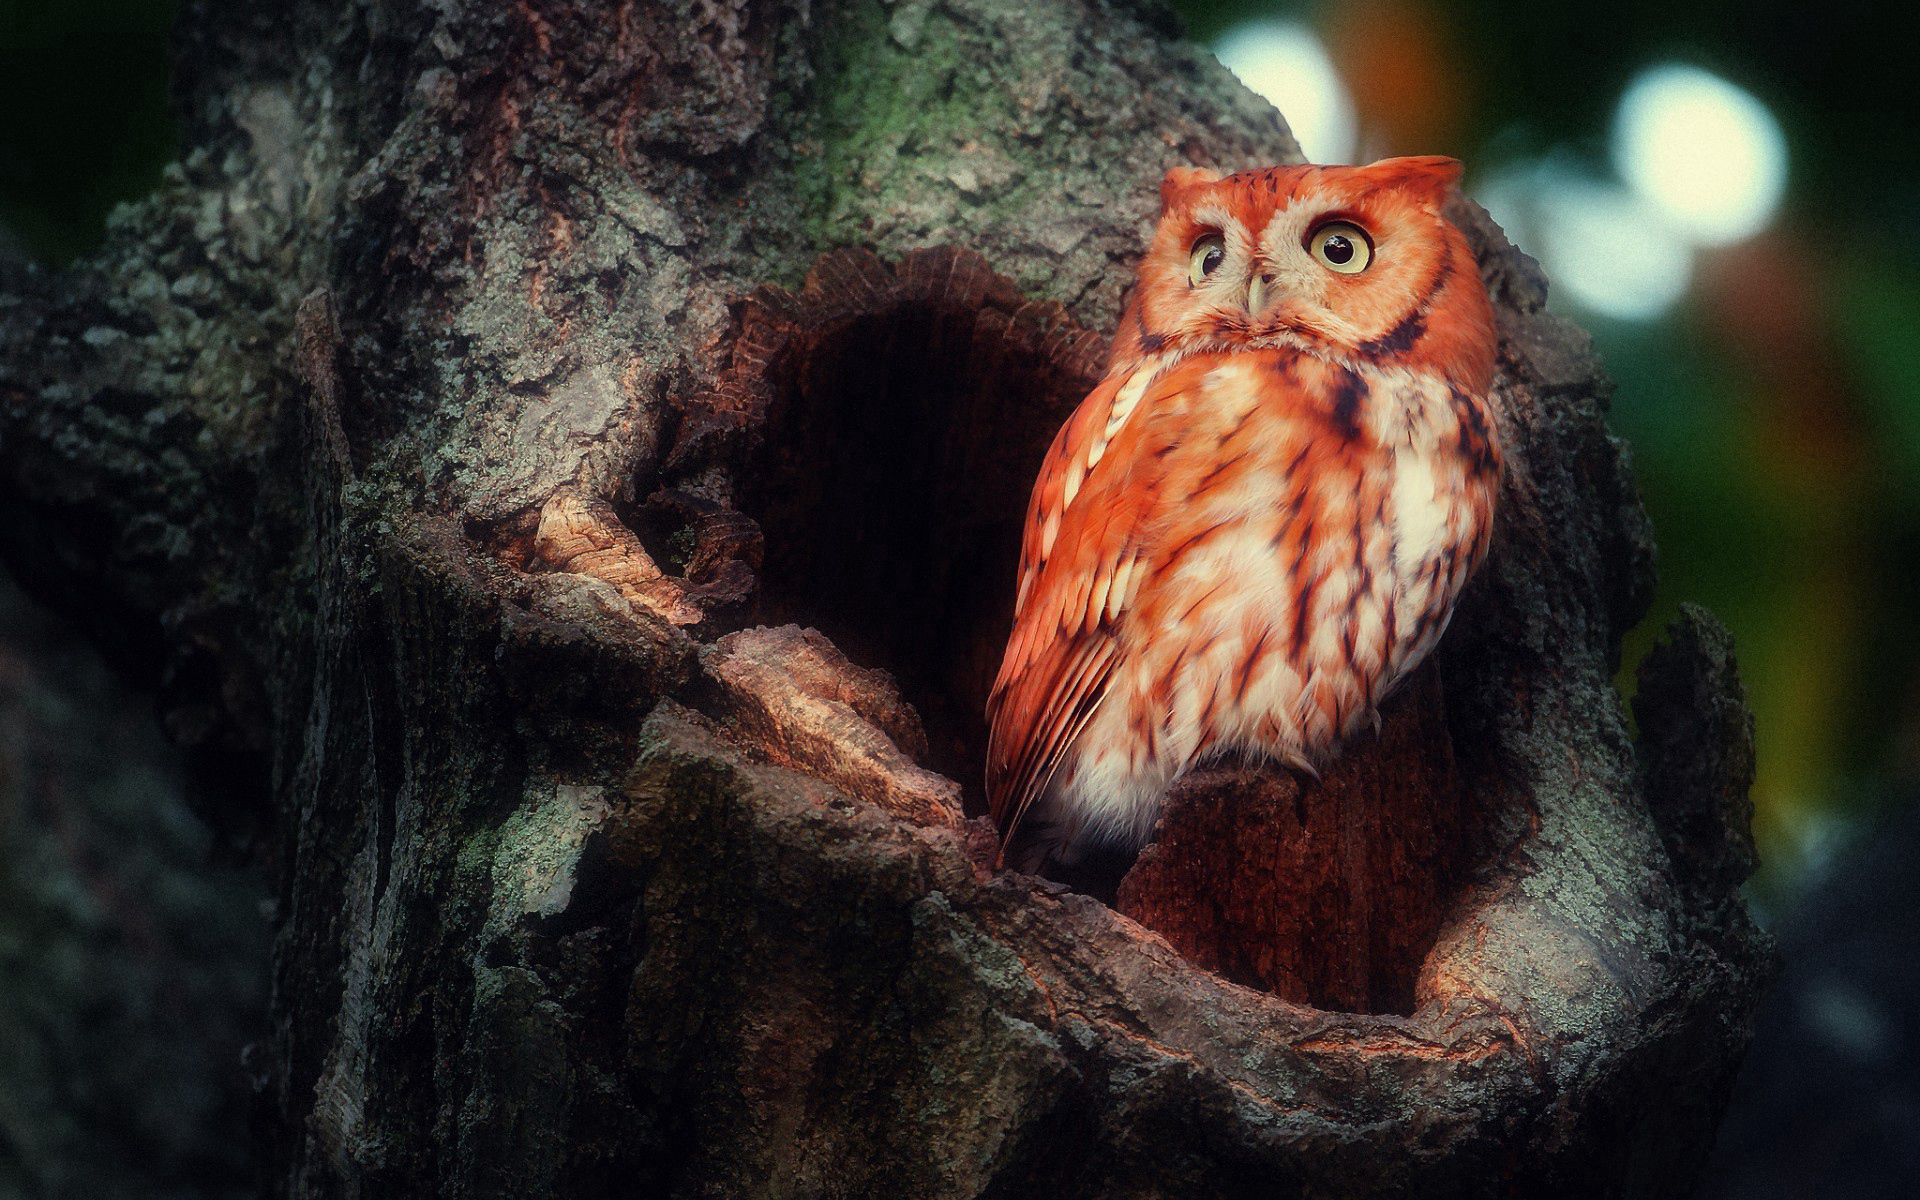 135407 download wallpaper Animals, Owl, Redhead, Sight, Opinion, Surprise, Wood, Tree, Hollow, Birds screensavers and pictures for free